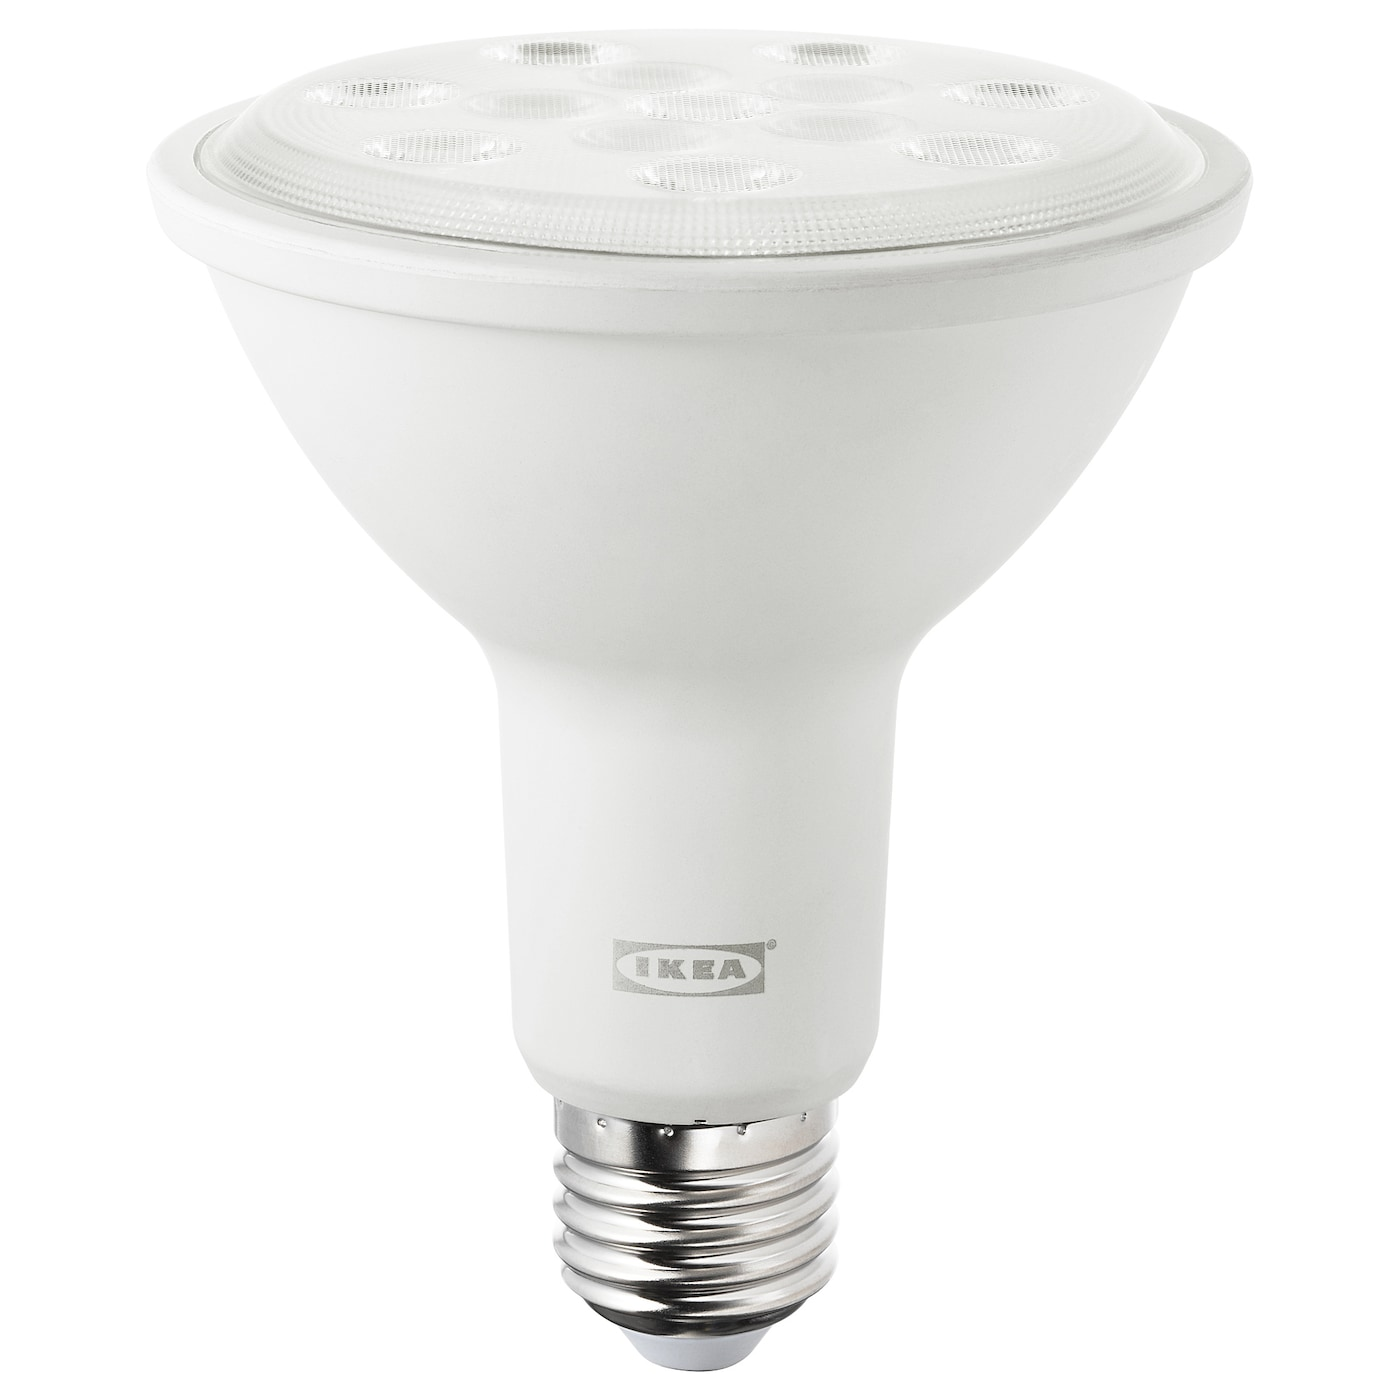 IKEA VÄXER LED bulb for cultivation PAR30 E27